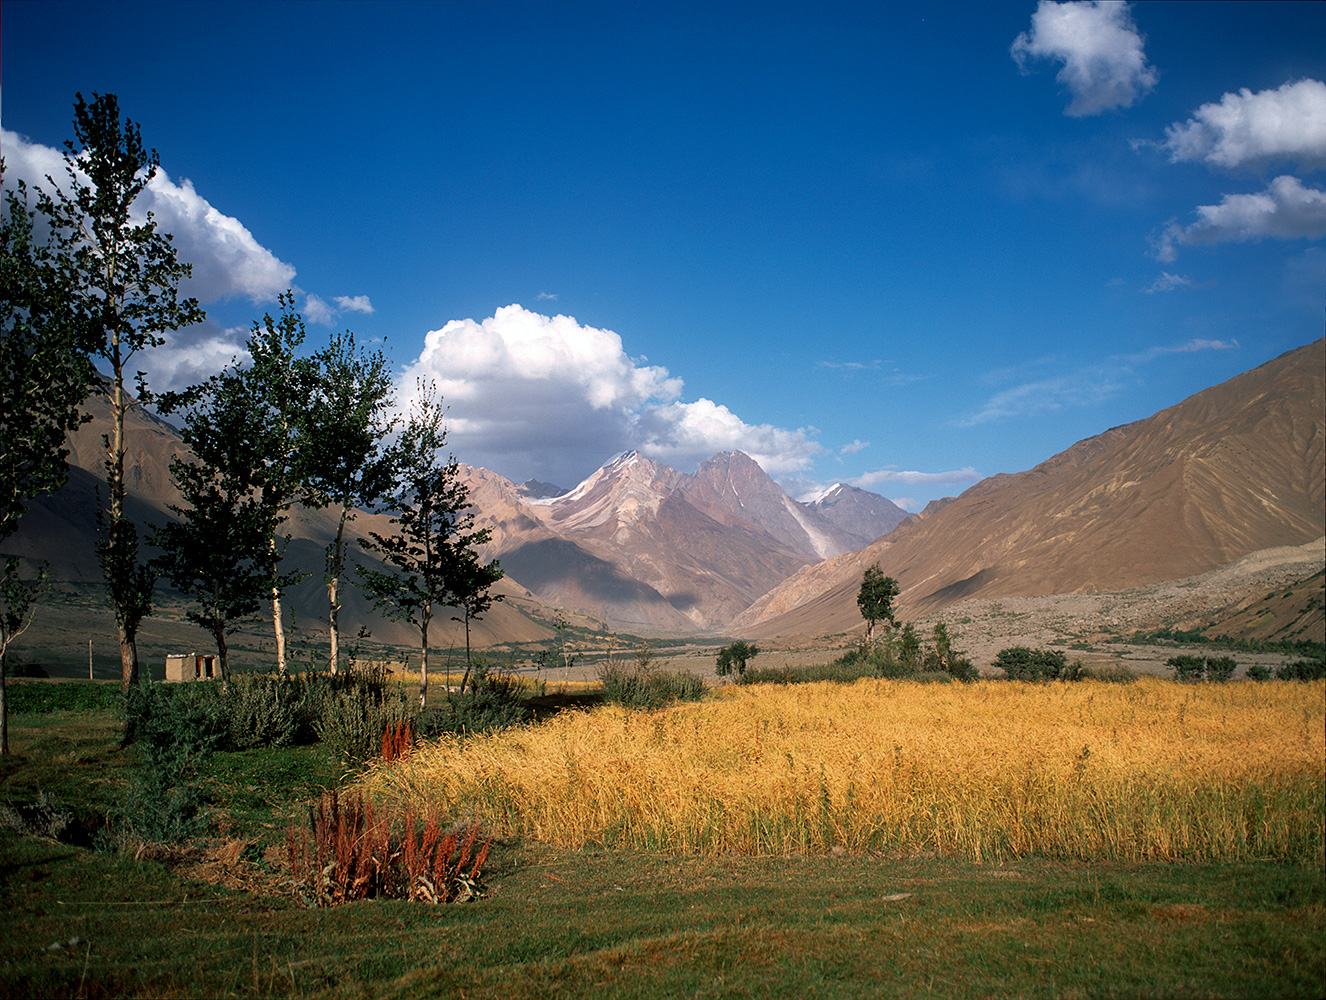 In the Yarkhun valley, ChitralNWFP, PakistanBronica ETRSi, 50mm, Fuji Velvia